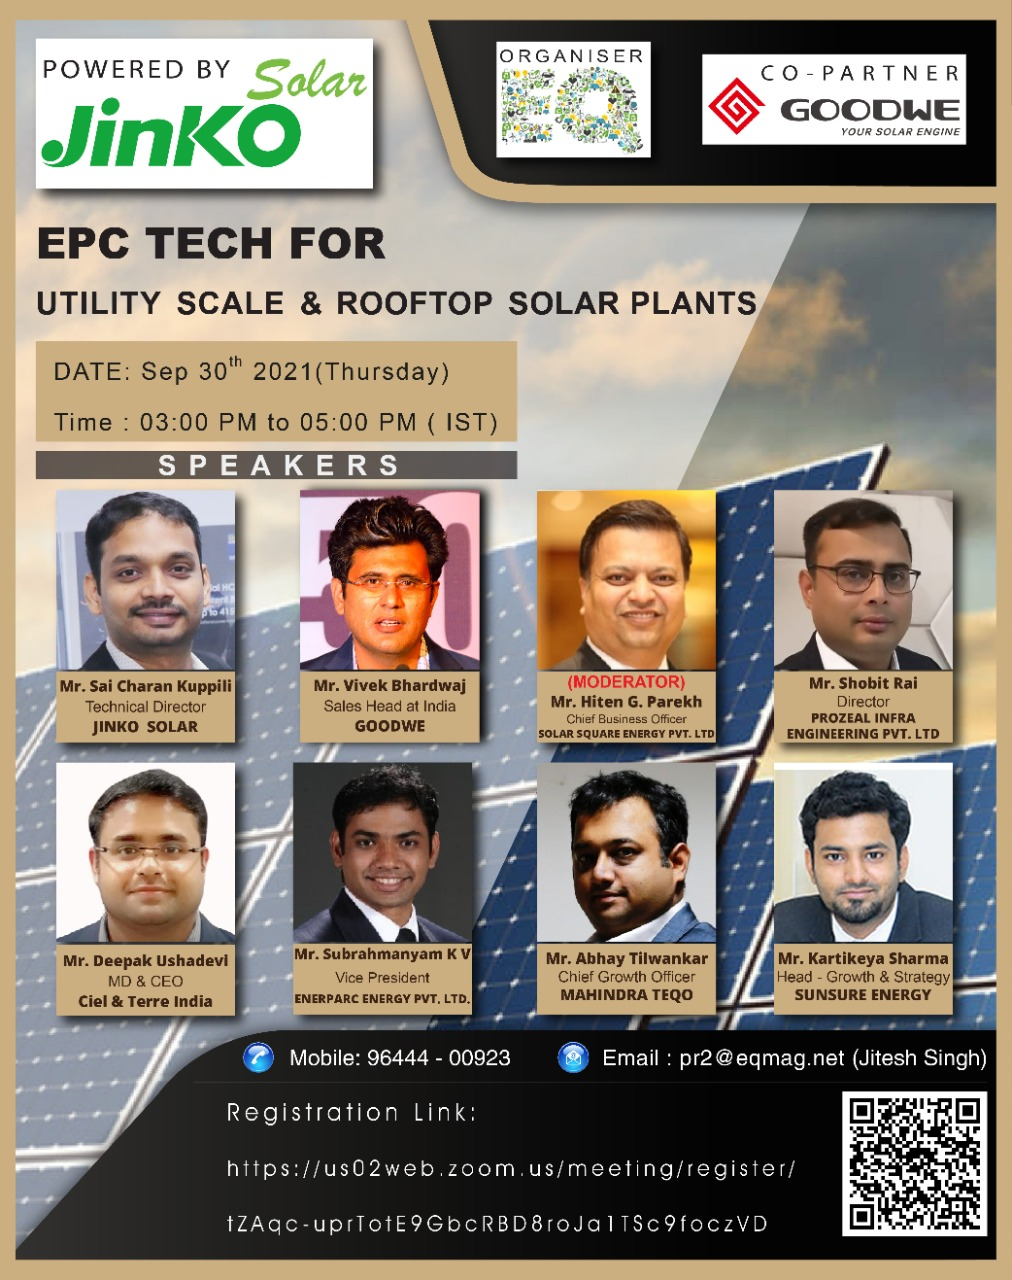 EQ Webinar on EPC Tech for Utility Scale & RoofTop Solar Plants Powered by Jinko Solar On Thursday September 30th From 3:00 PM Onwards…. Register Now !!!